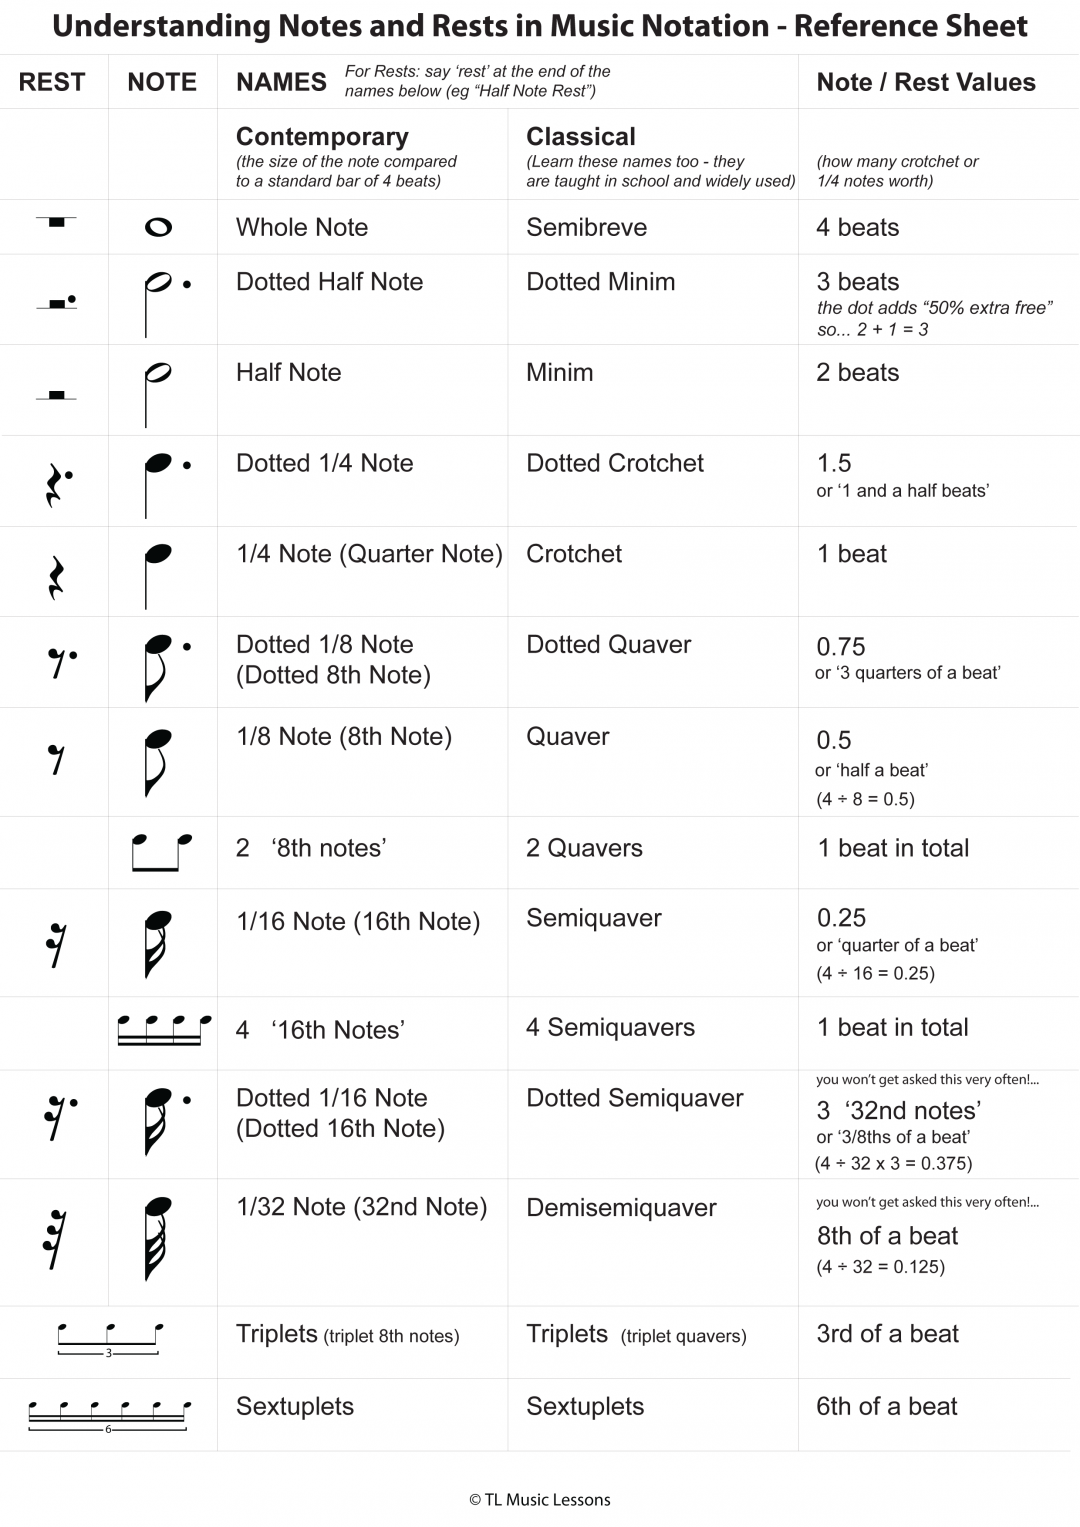 Understanding Notes and Rests in Music Notation – Reference Sheet